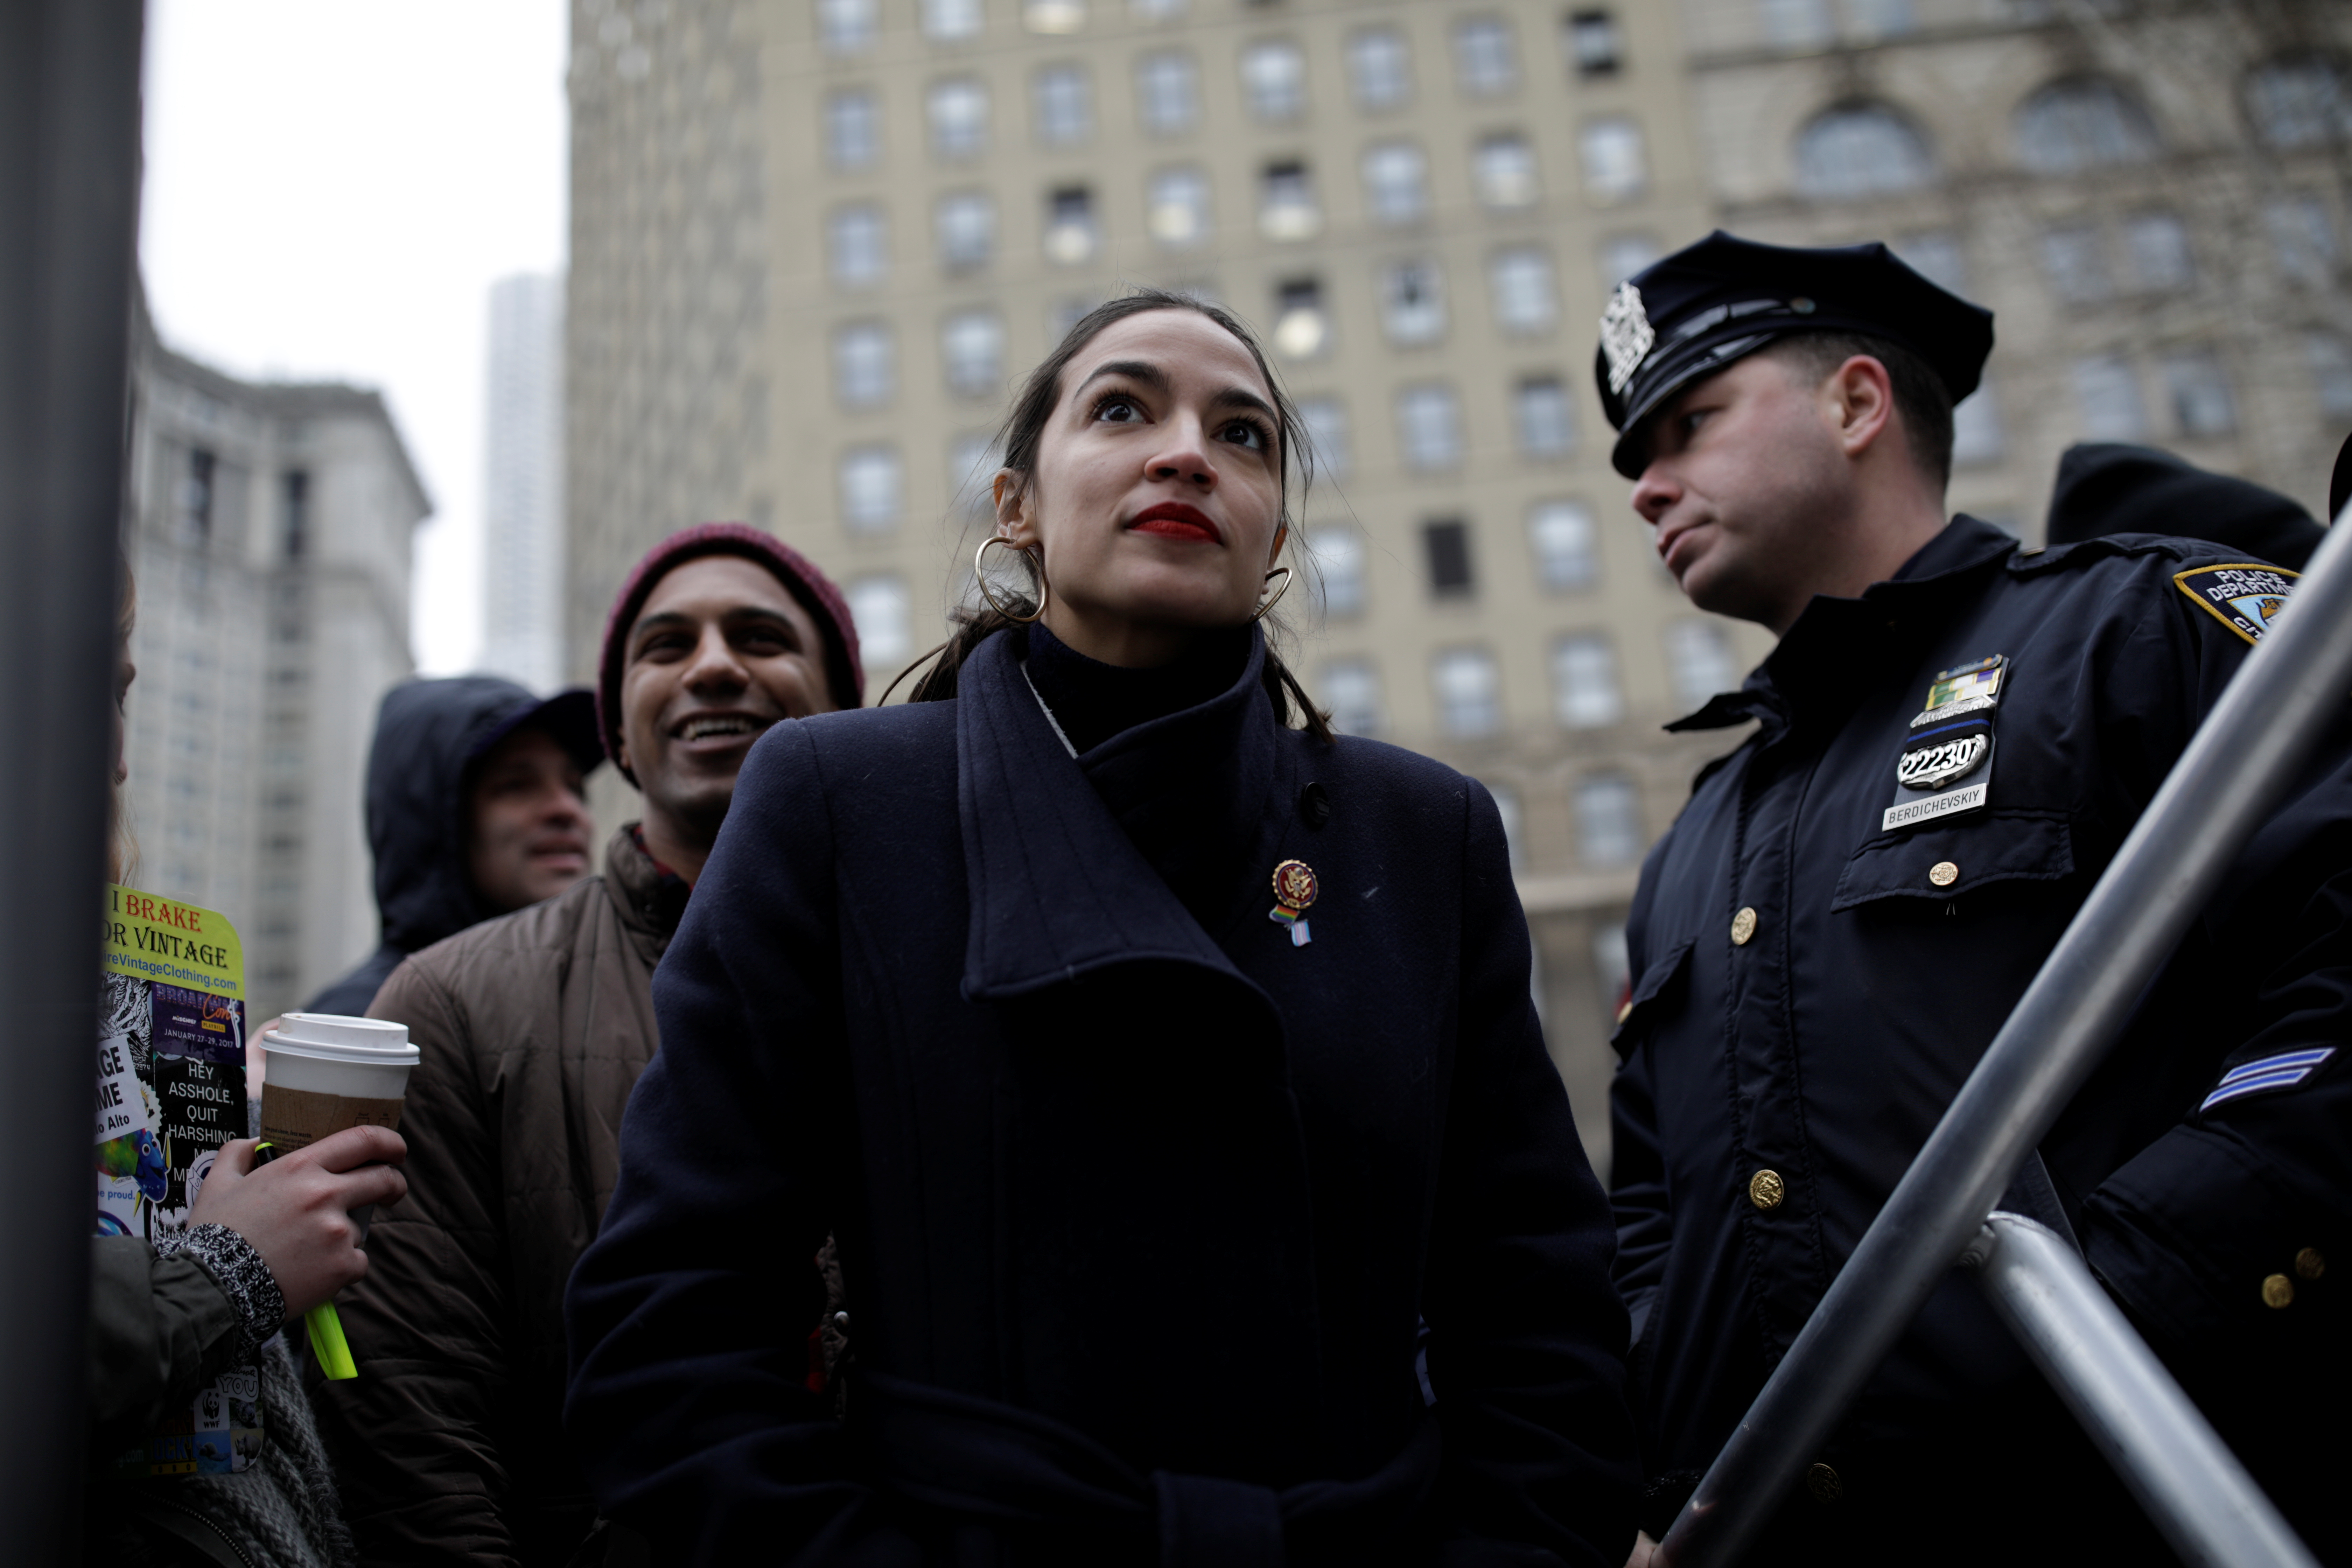 Representative Alexandria Ocasio-Cortez looks on as she awaits to be introduced to the crowd of supporters during the Women's March NYC demonstration at Foley Square in the Manhattan borough of New York City